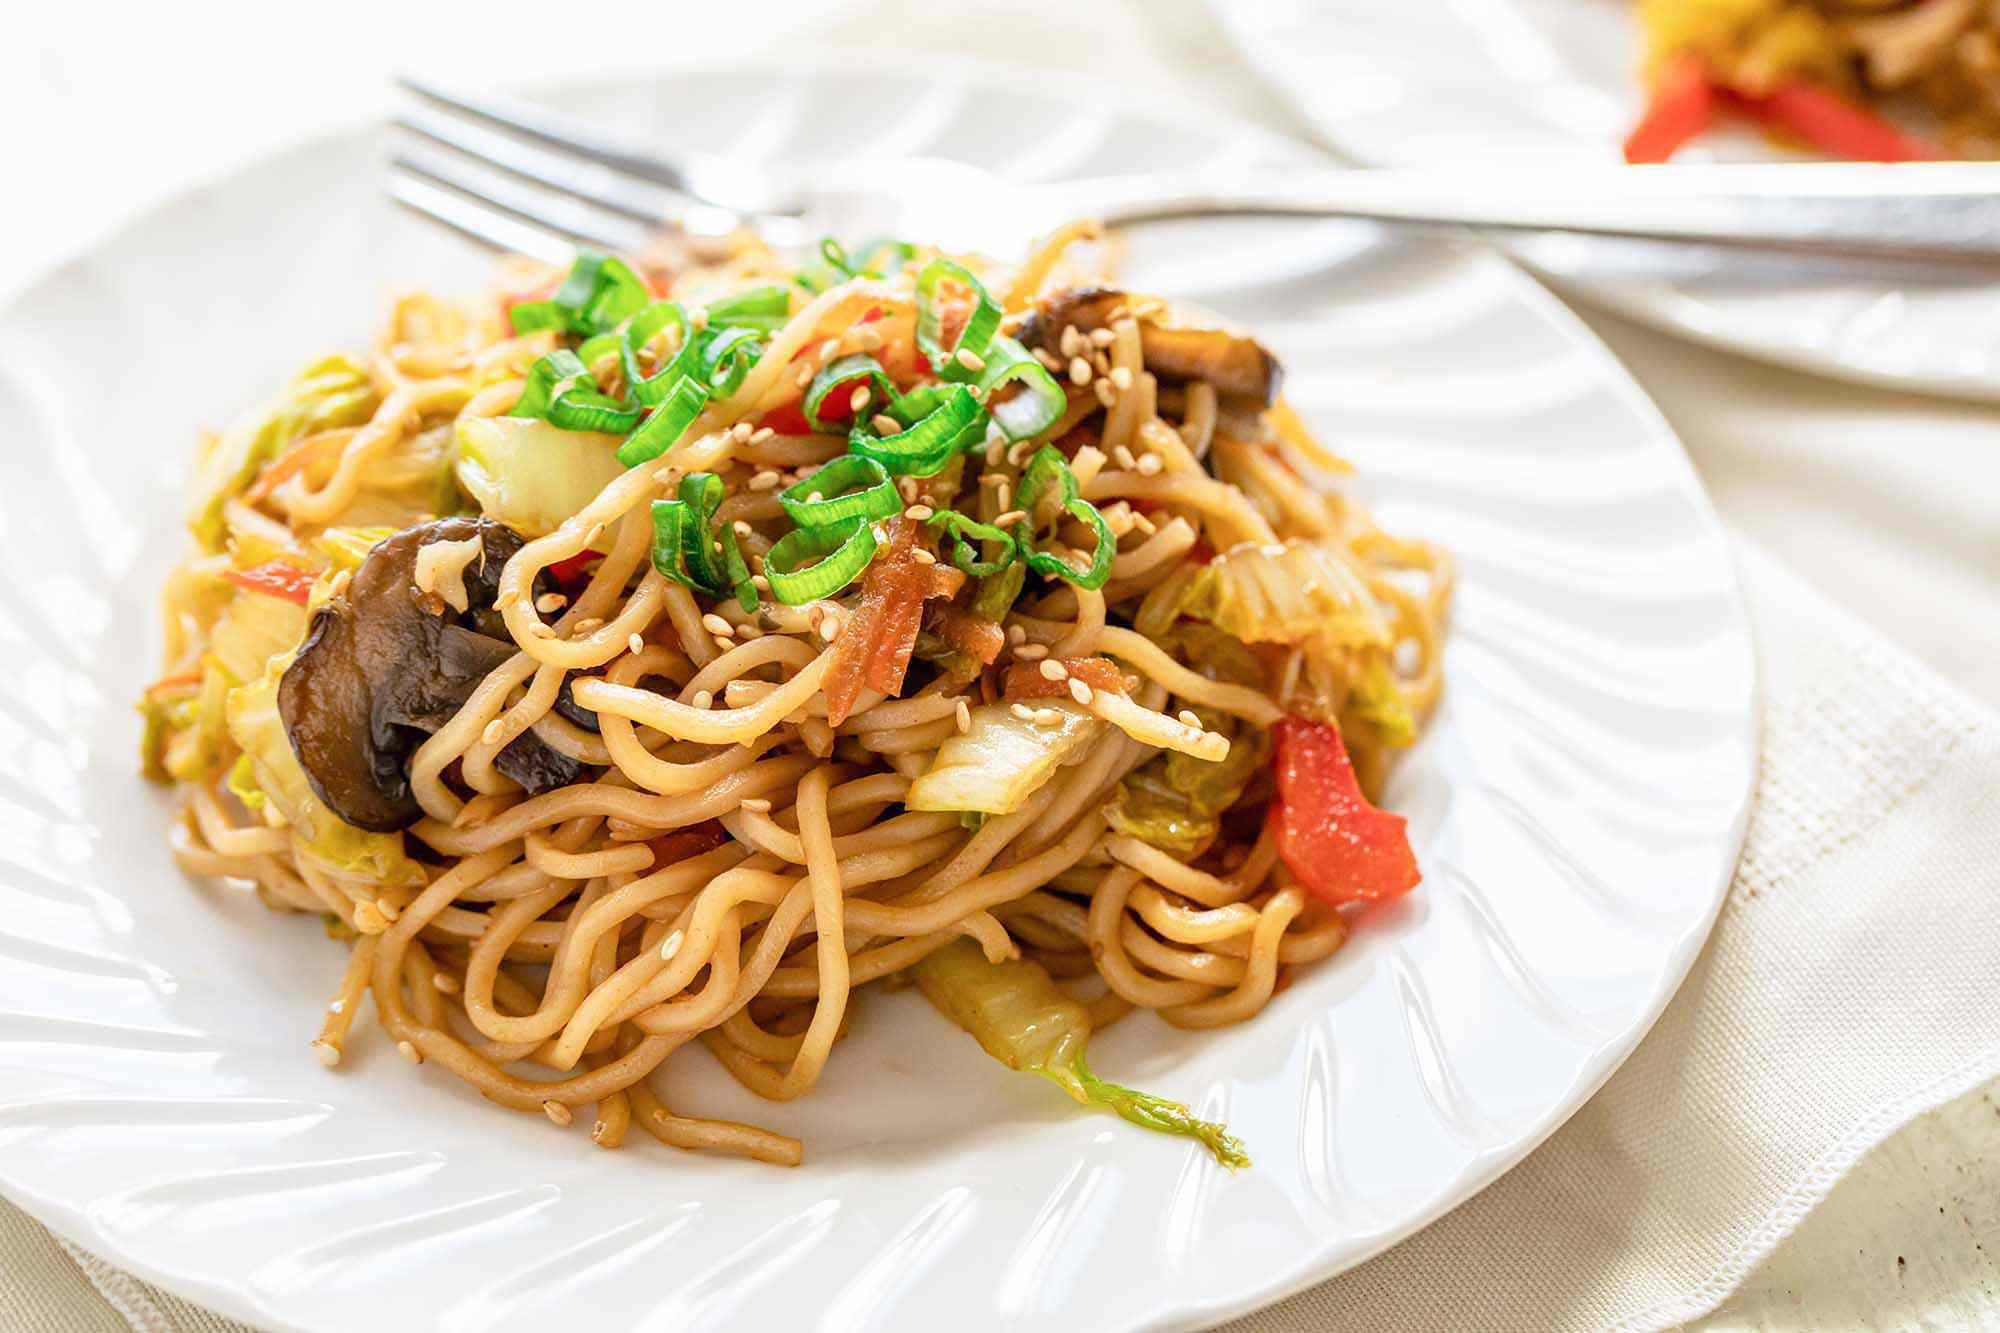 Side view of a white plate and fork with homemade vegetable lo mein. A fork is on the plate and a second plate is partially visible in the upper right hand corner.